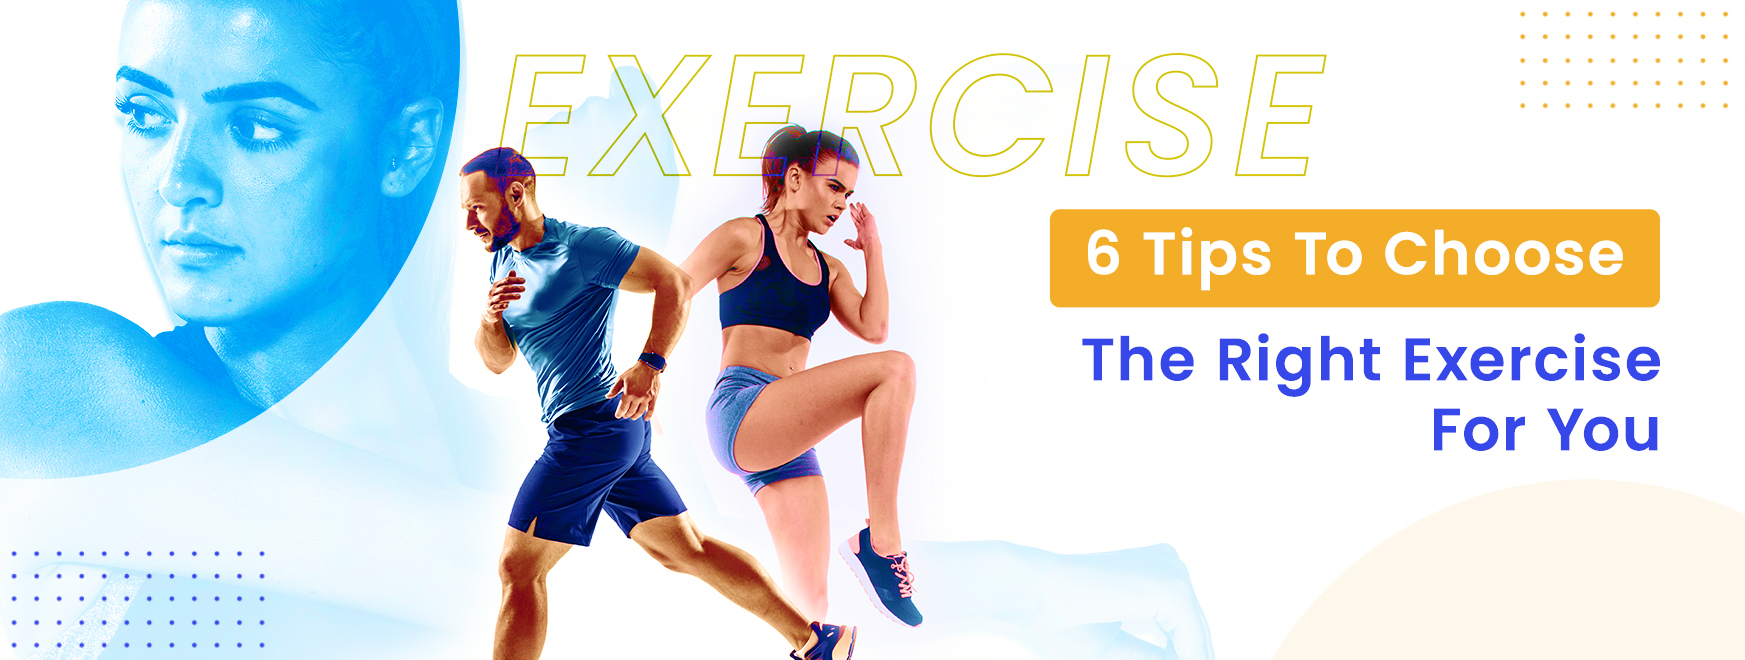 6 Tips To Choose The Right Exercise For You